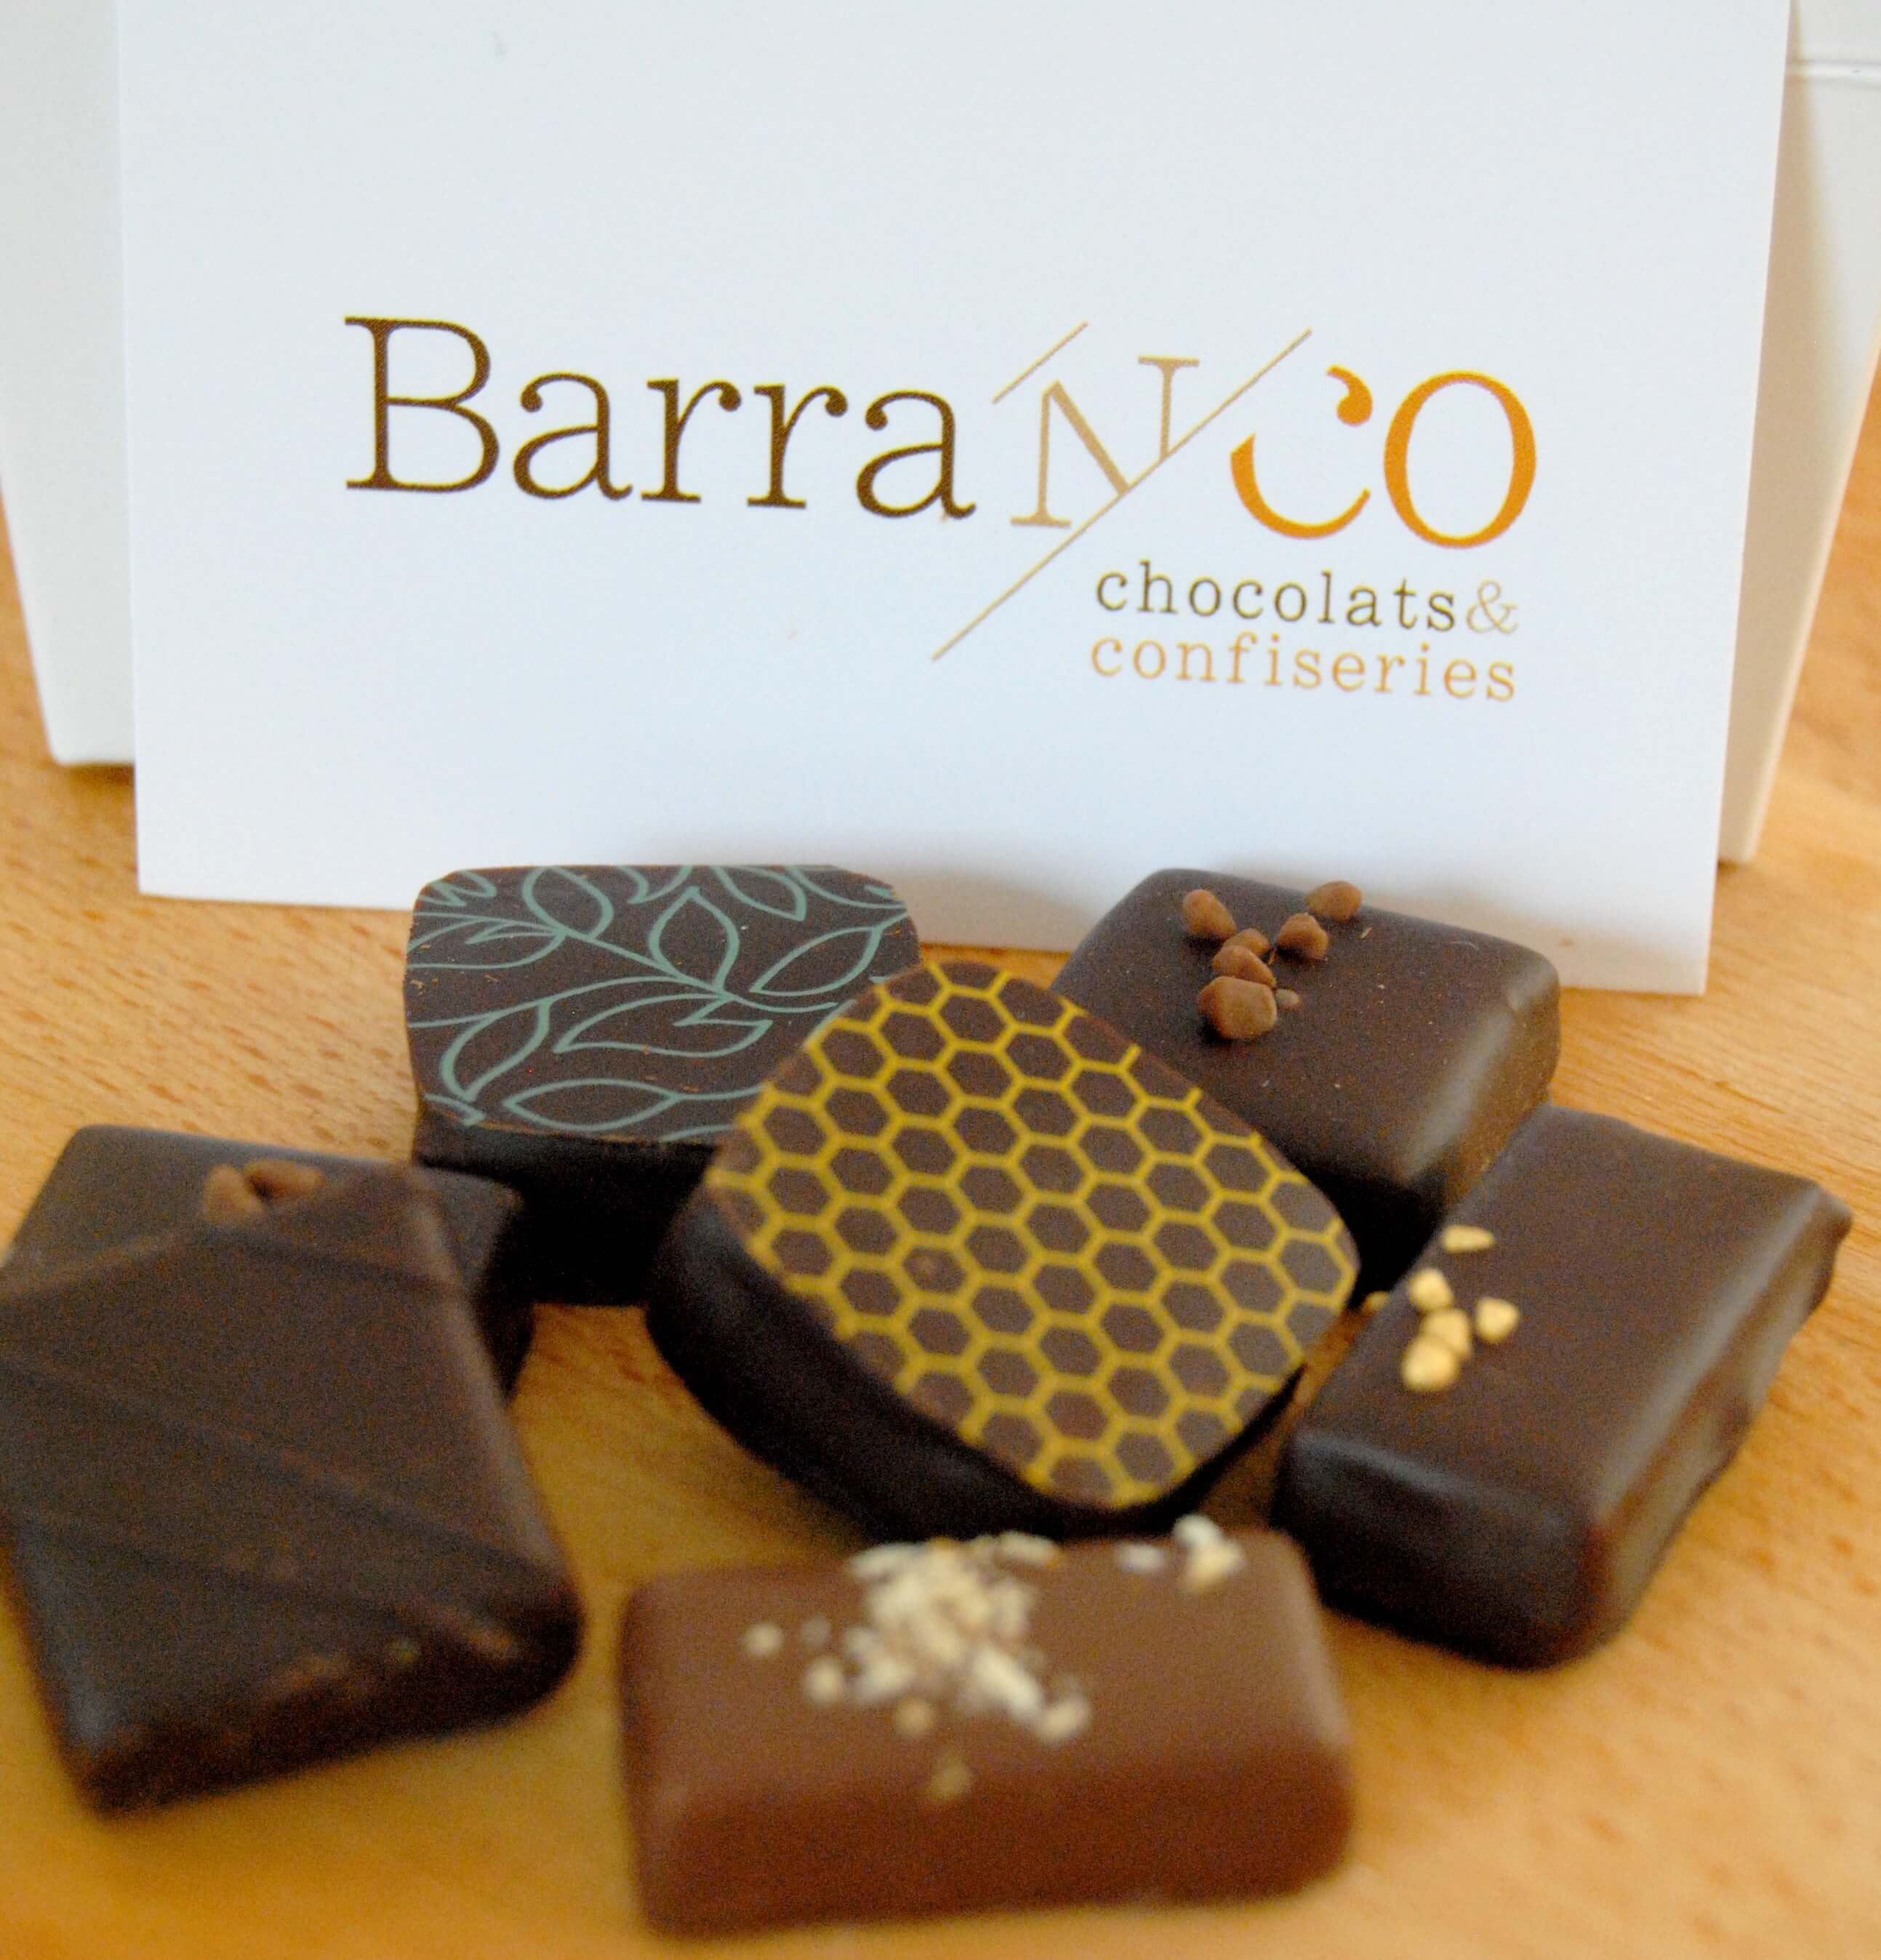 barranco-chocolats